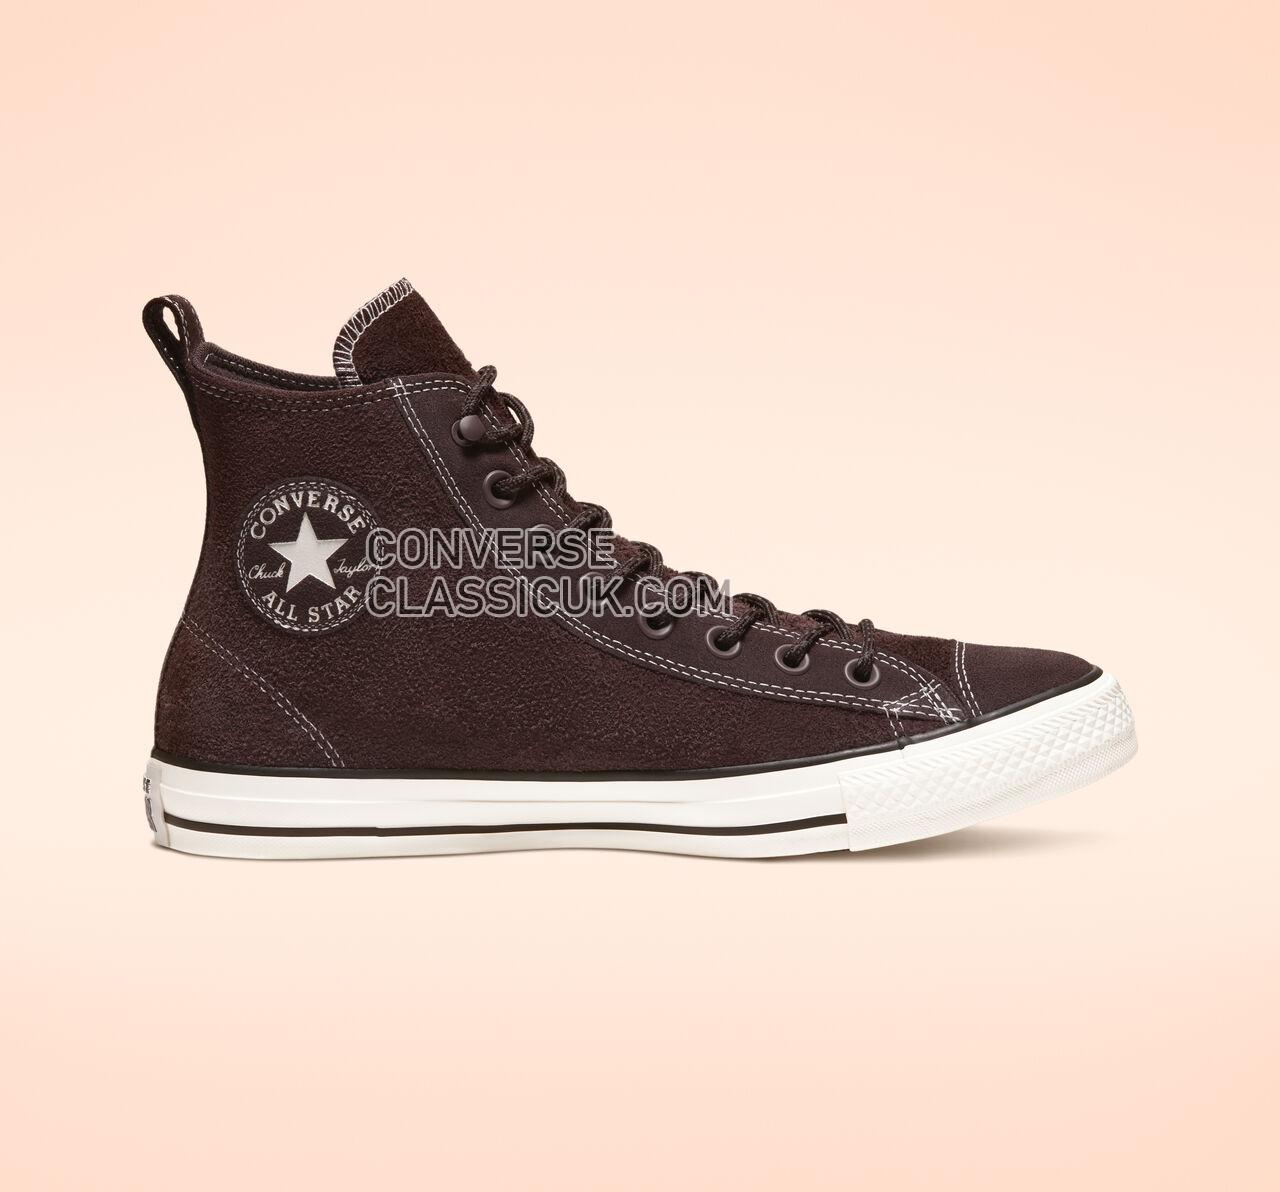 Converse Chuck Taylor All Star Suede High Top Mens Womens Unisex 165844C Burnt Umber/Egret/Black Shoes